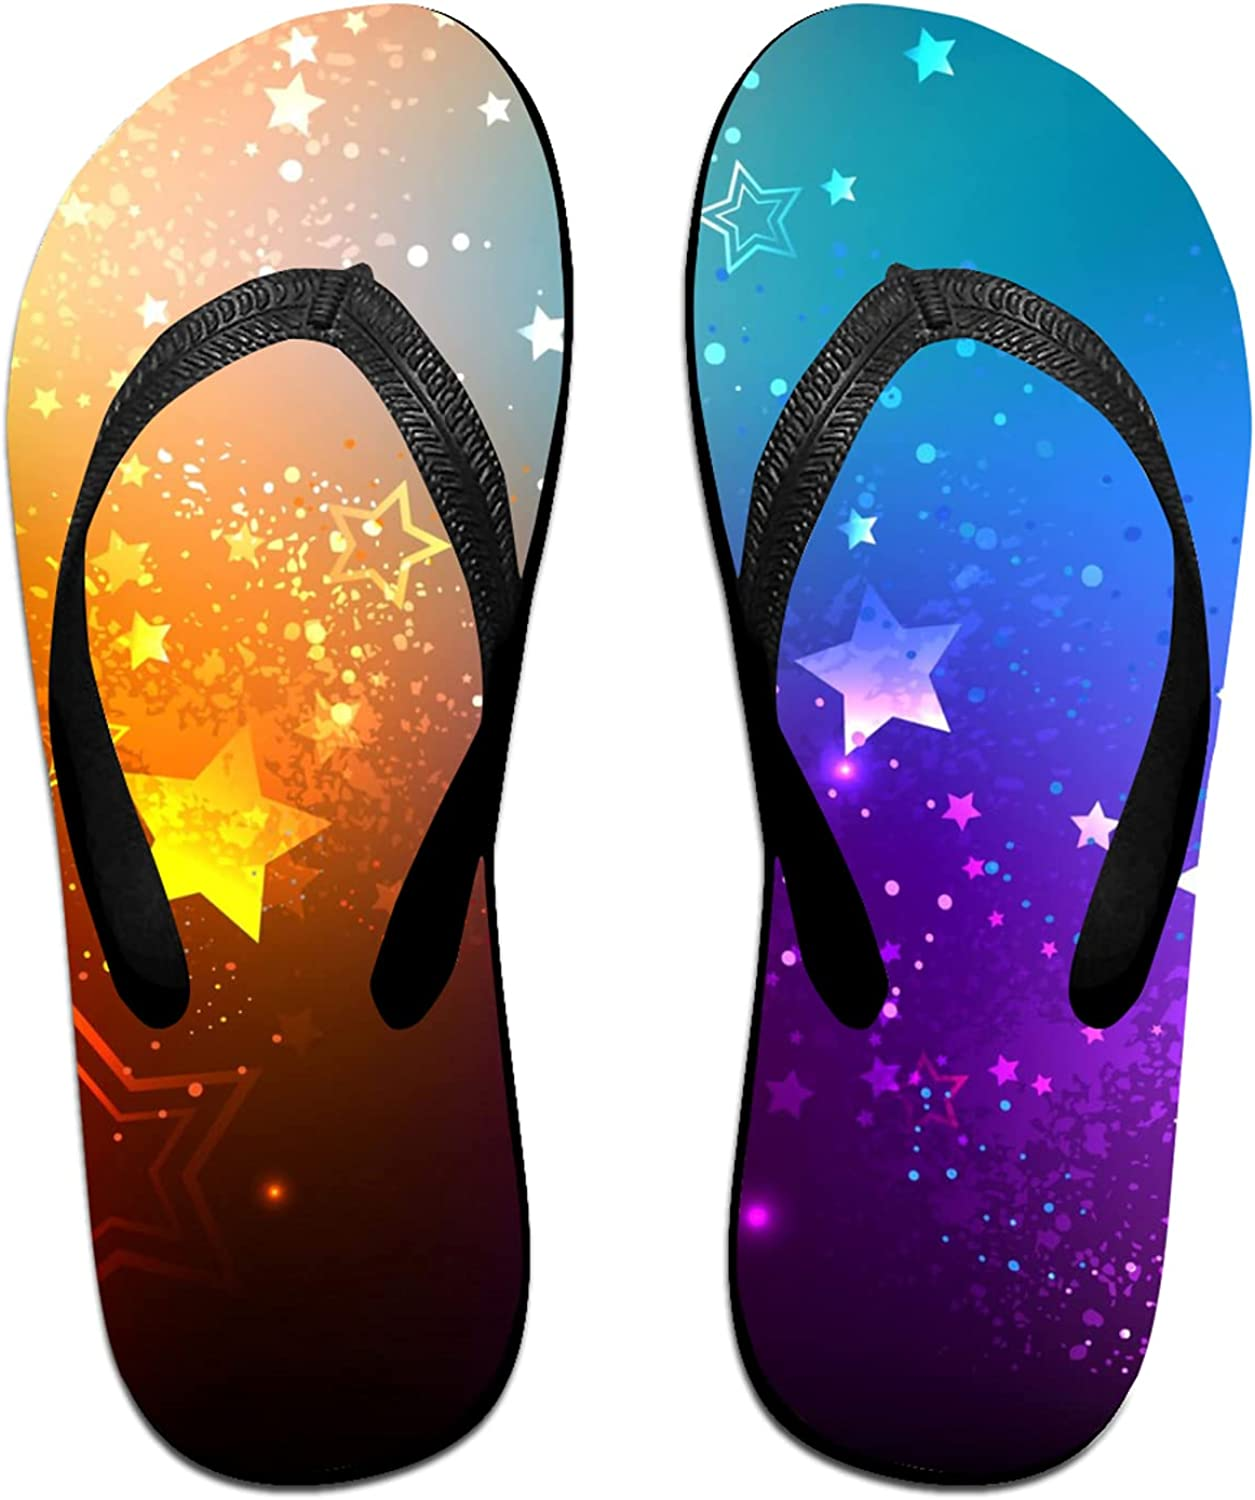 Super popular specialty store Stars on Rainbow Color Factory outlet Flip-Flop for Summer Sandals Slipp Beach